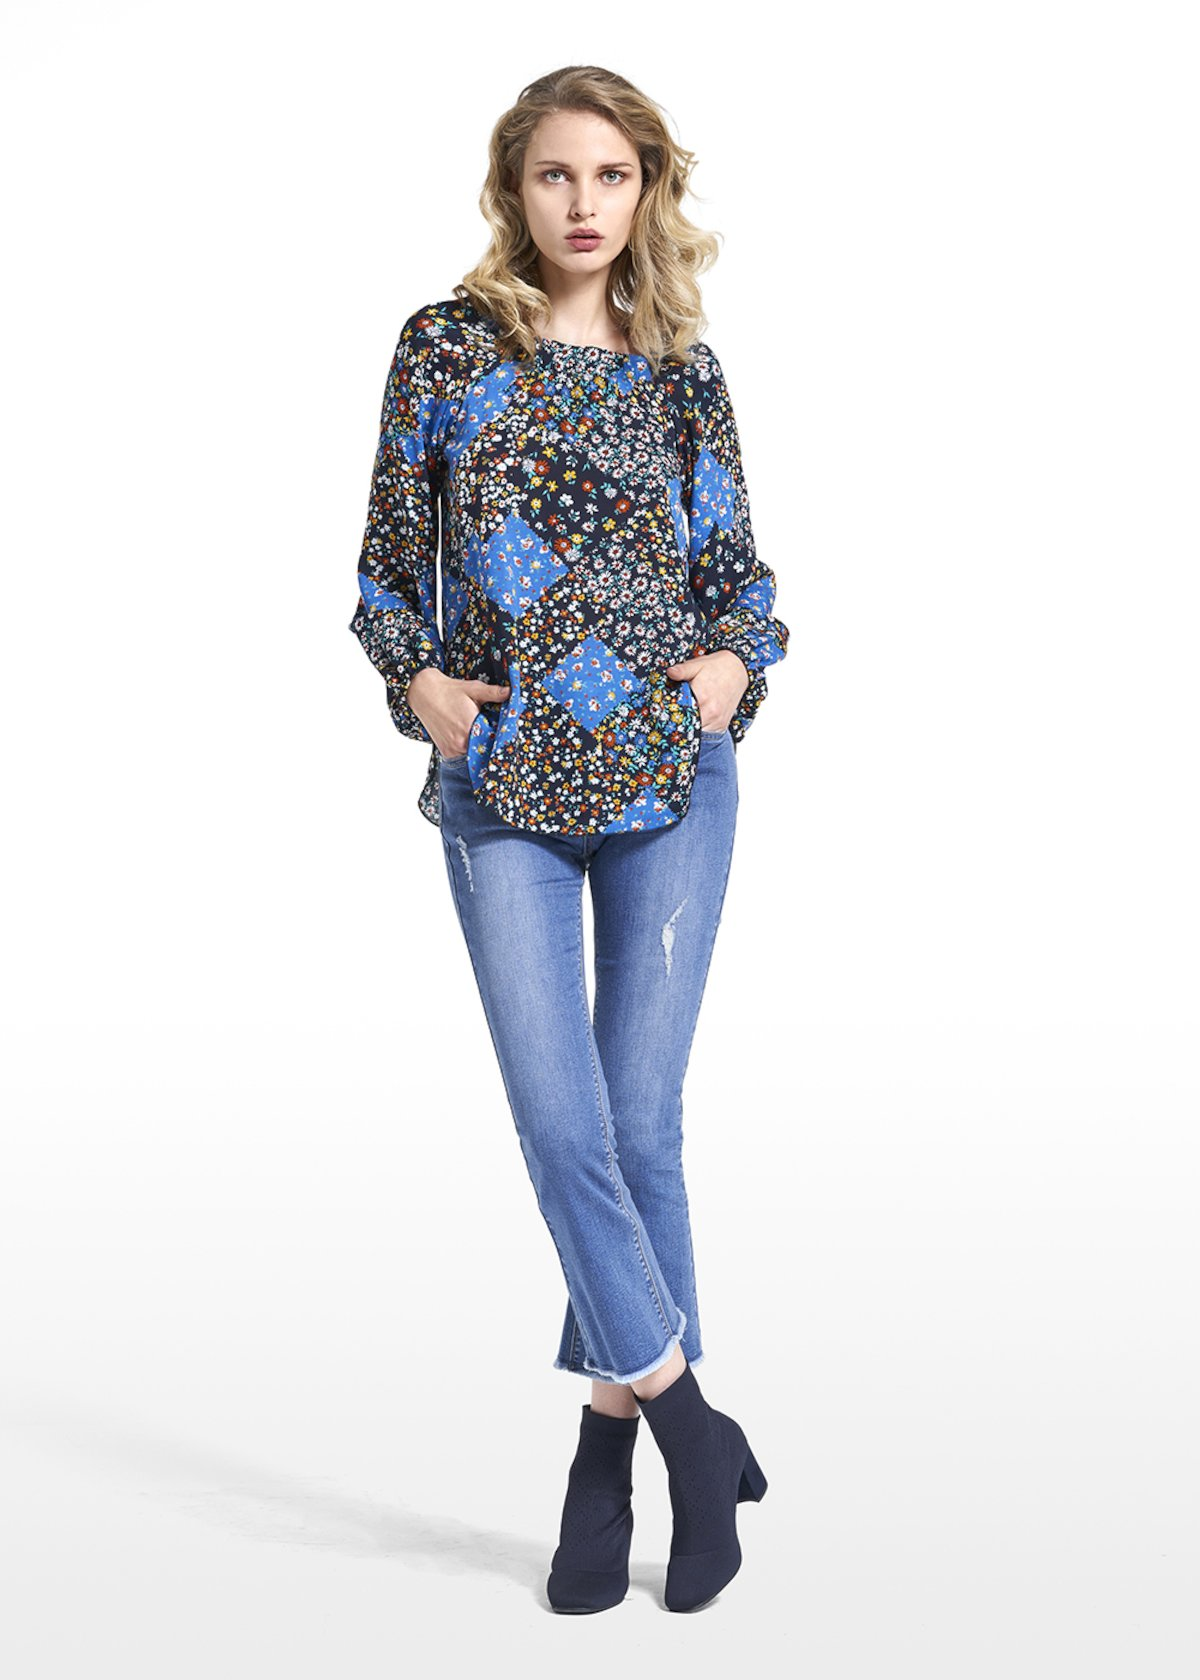 Blusa Cristina fantasia covent garden con ariccio sullo scollo - Blue / Avion Fantasia - Donna - Immagine categoria